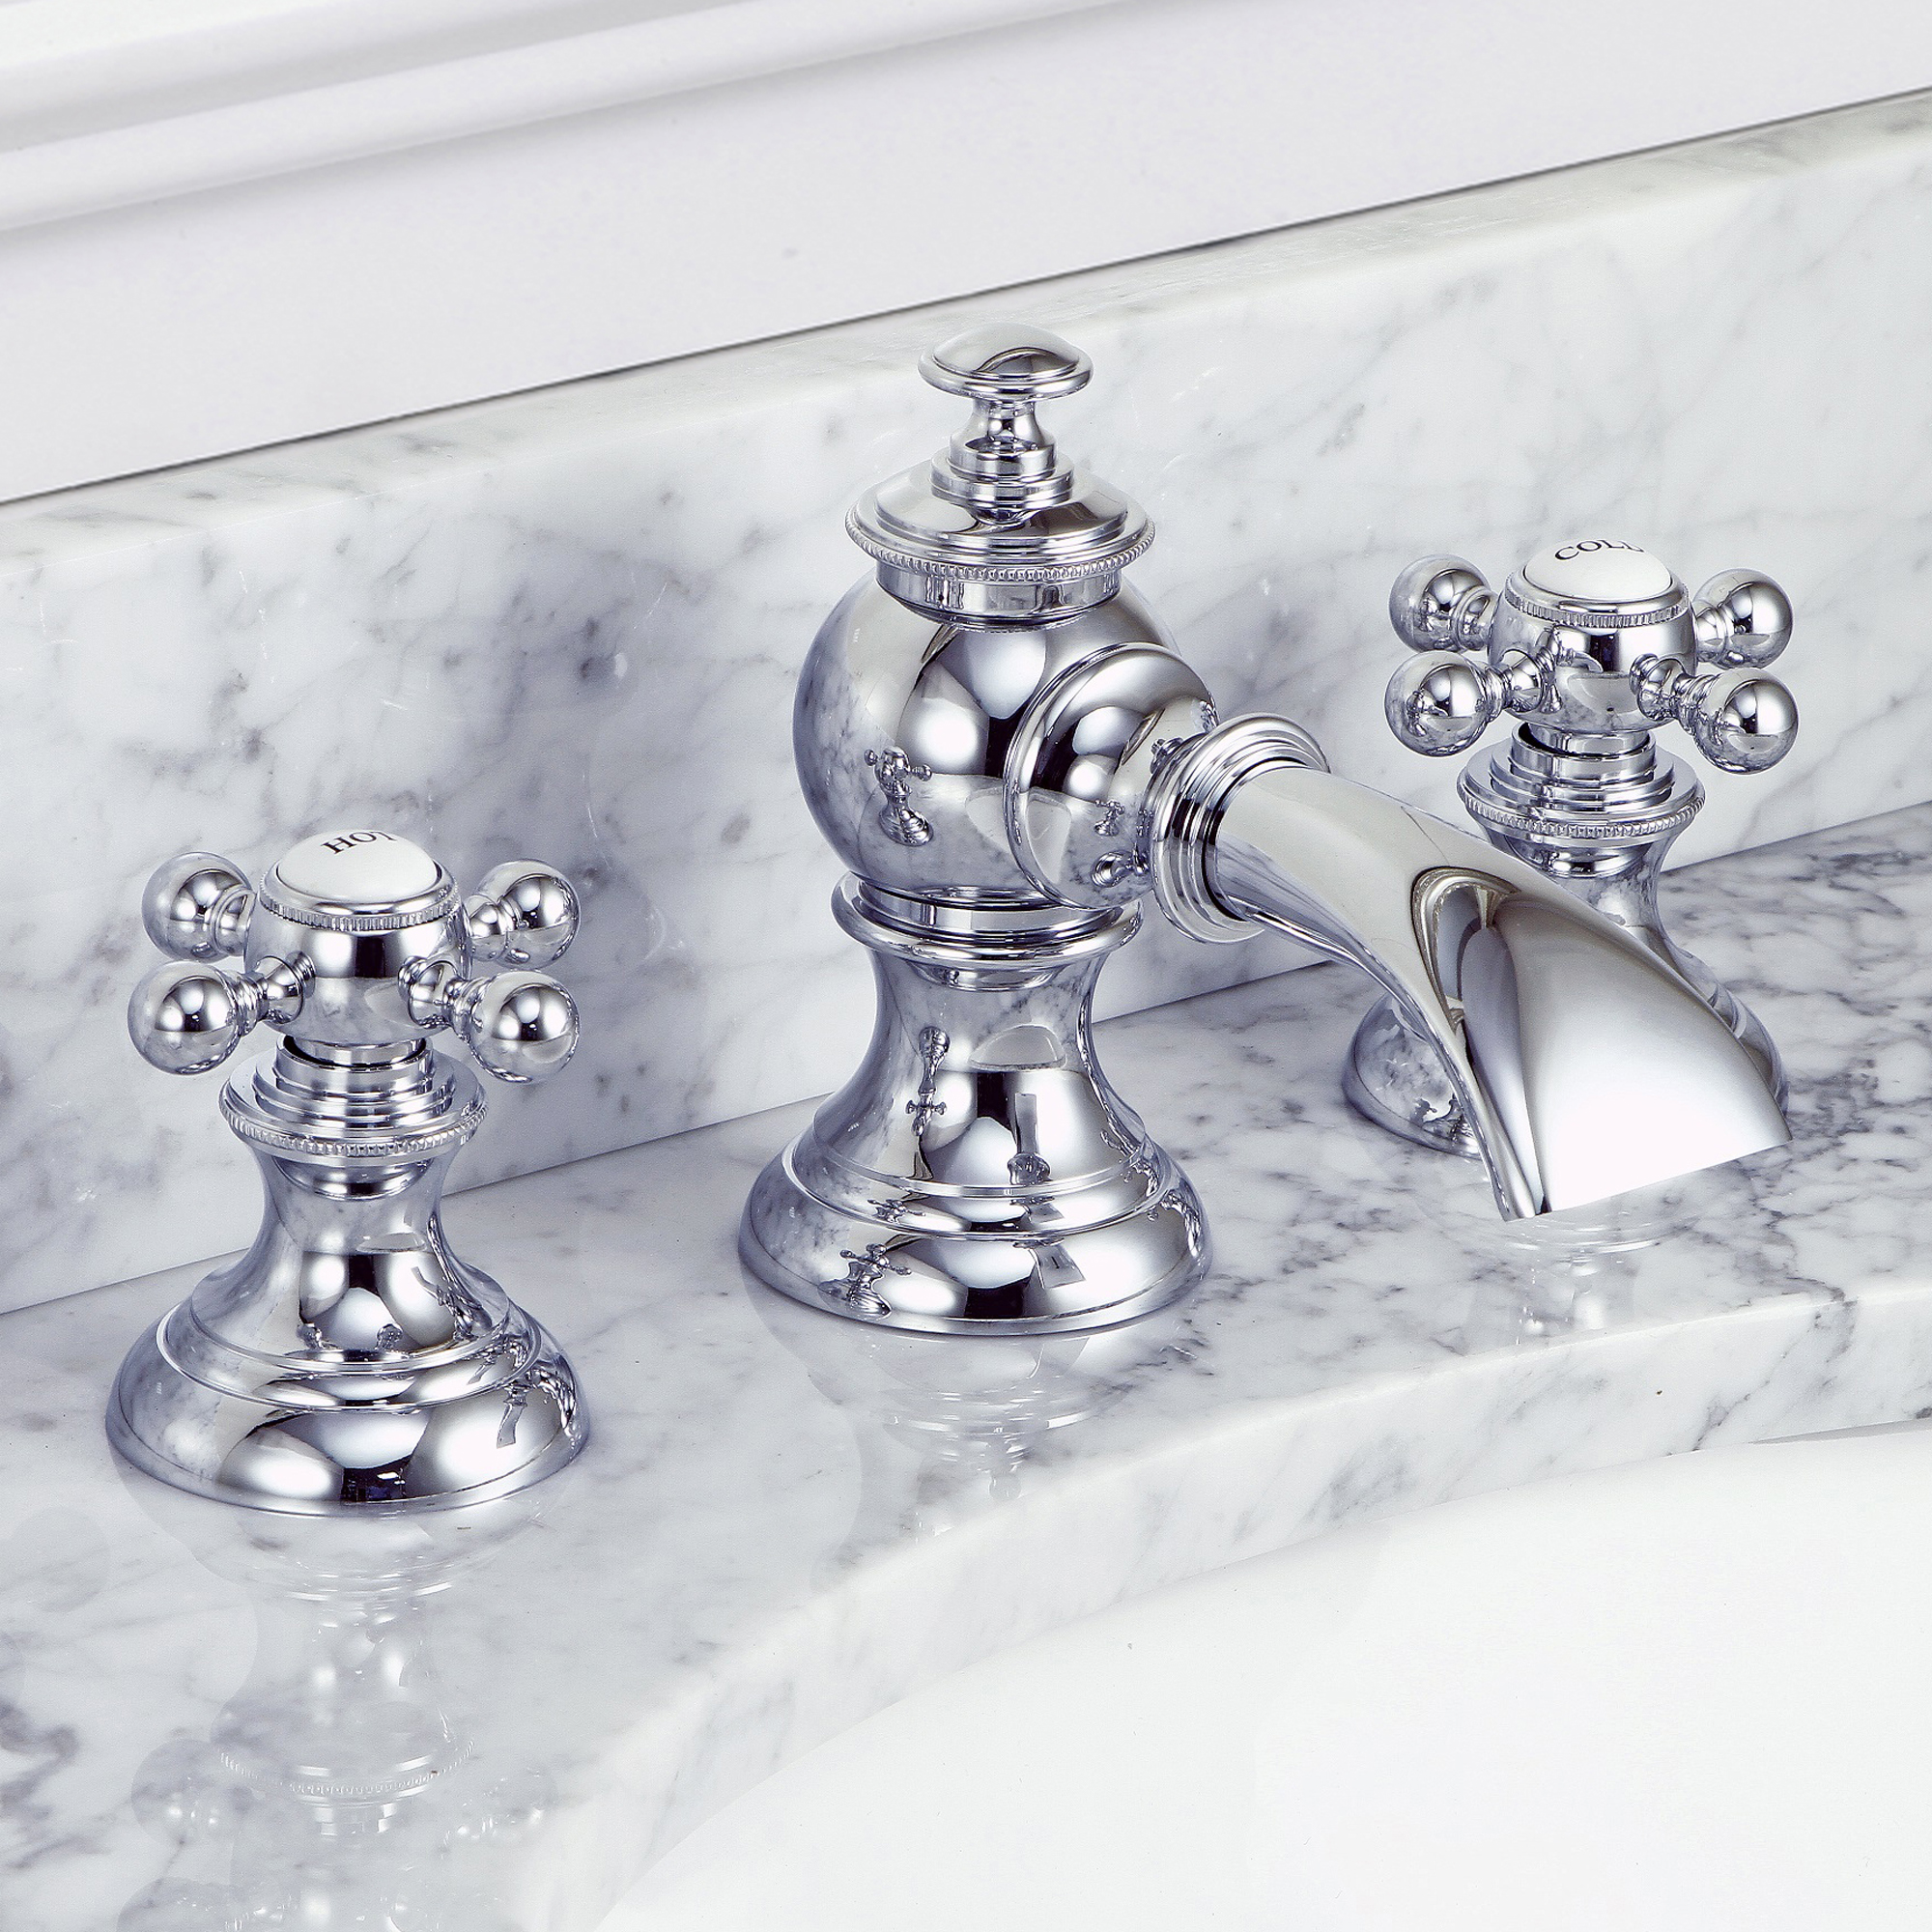 Modern Classic Widespread Lavatory Faucets With Pop-Up Drain in Chrome Finish With Metal Lever Handles